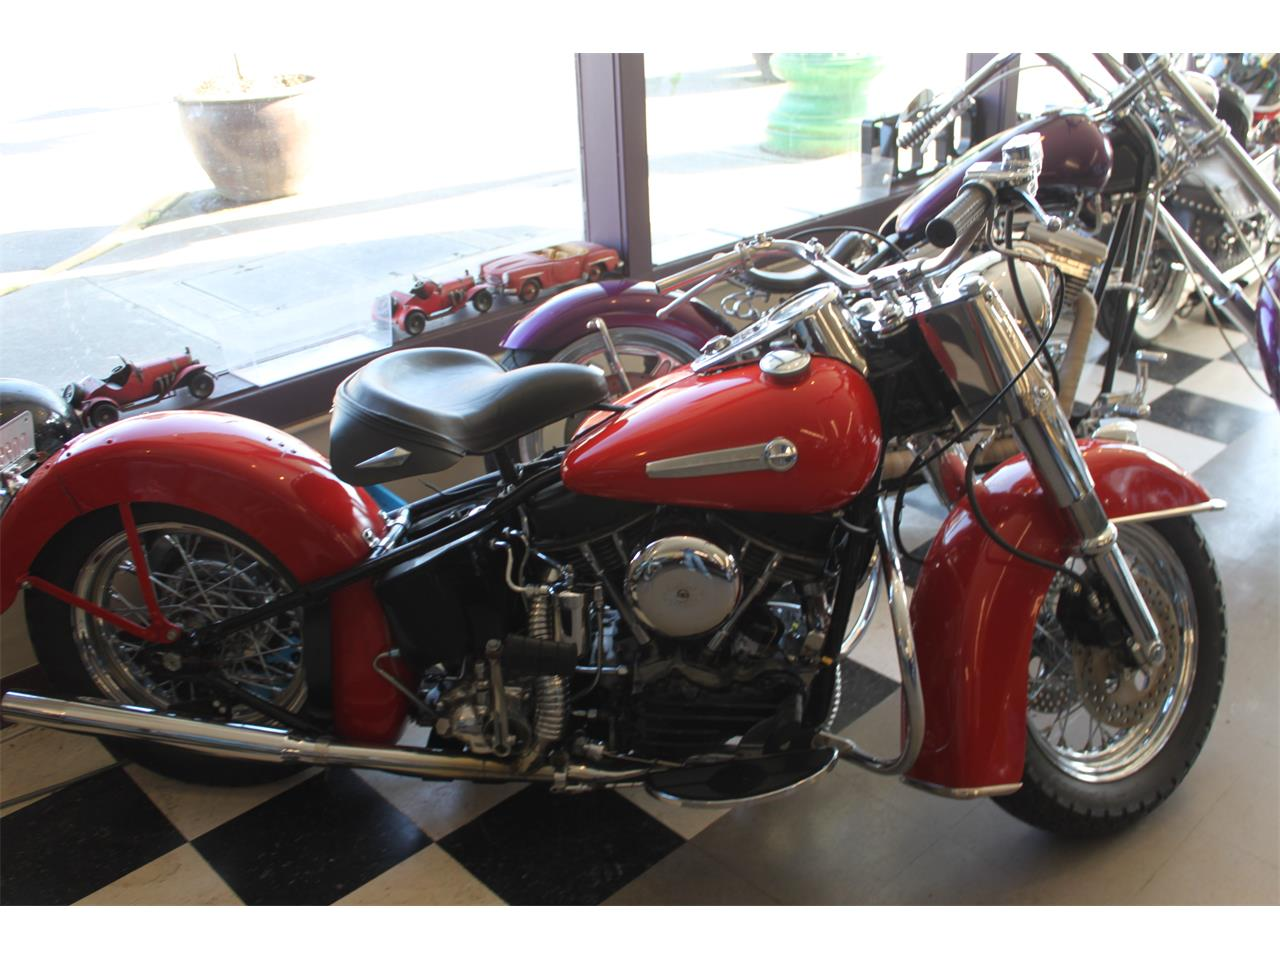 1950 Harley-Davidson Motorcycle for sale in Carnation, WA – photo 3